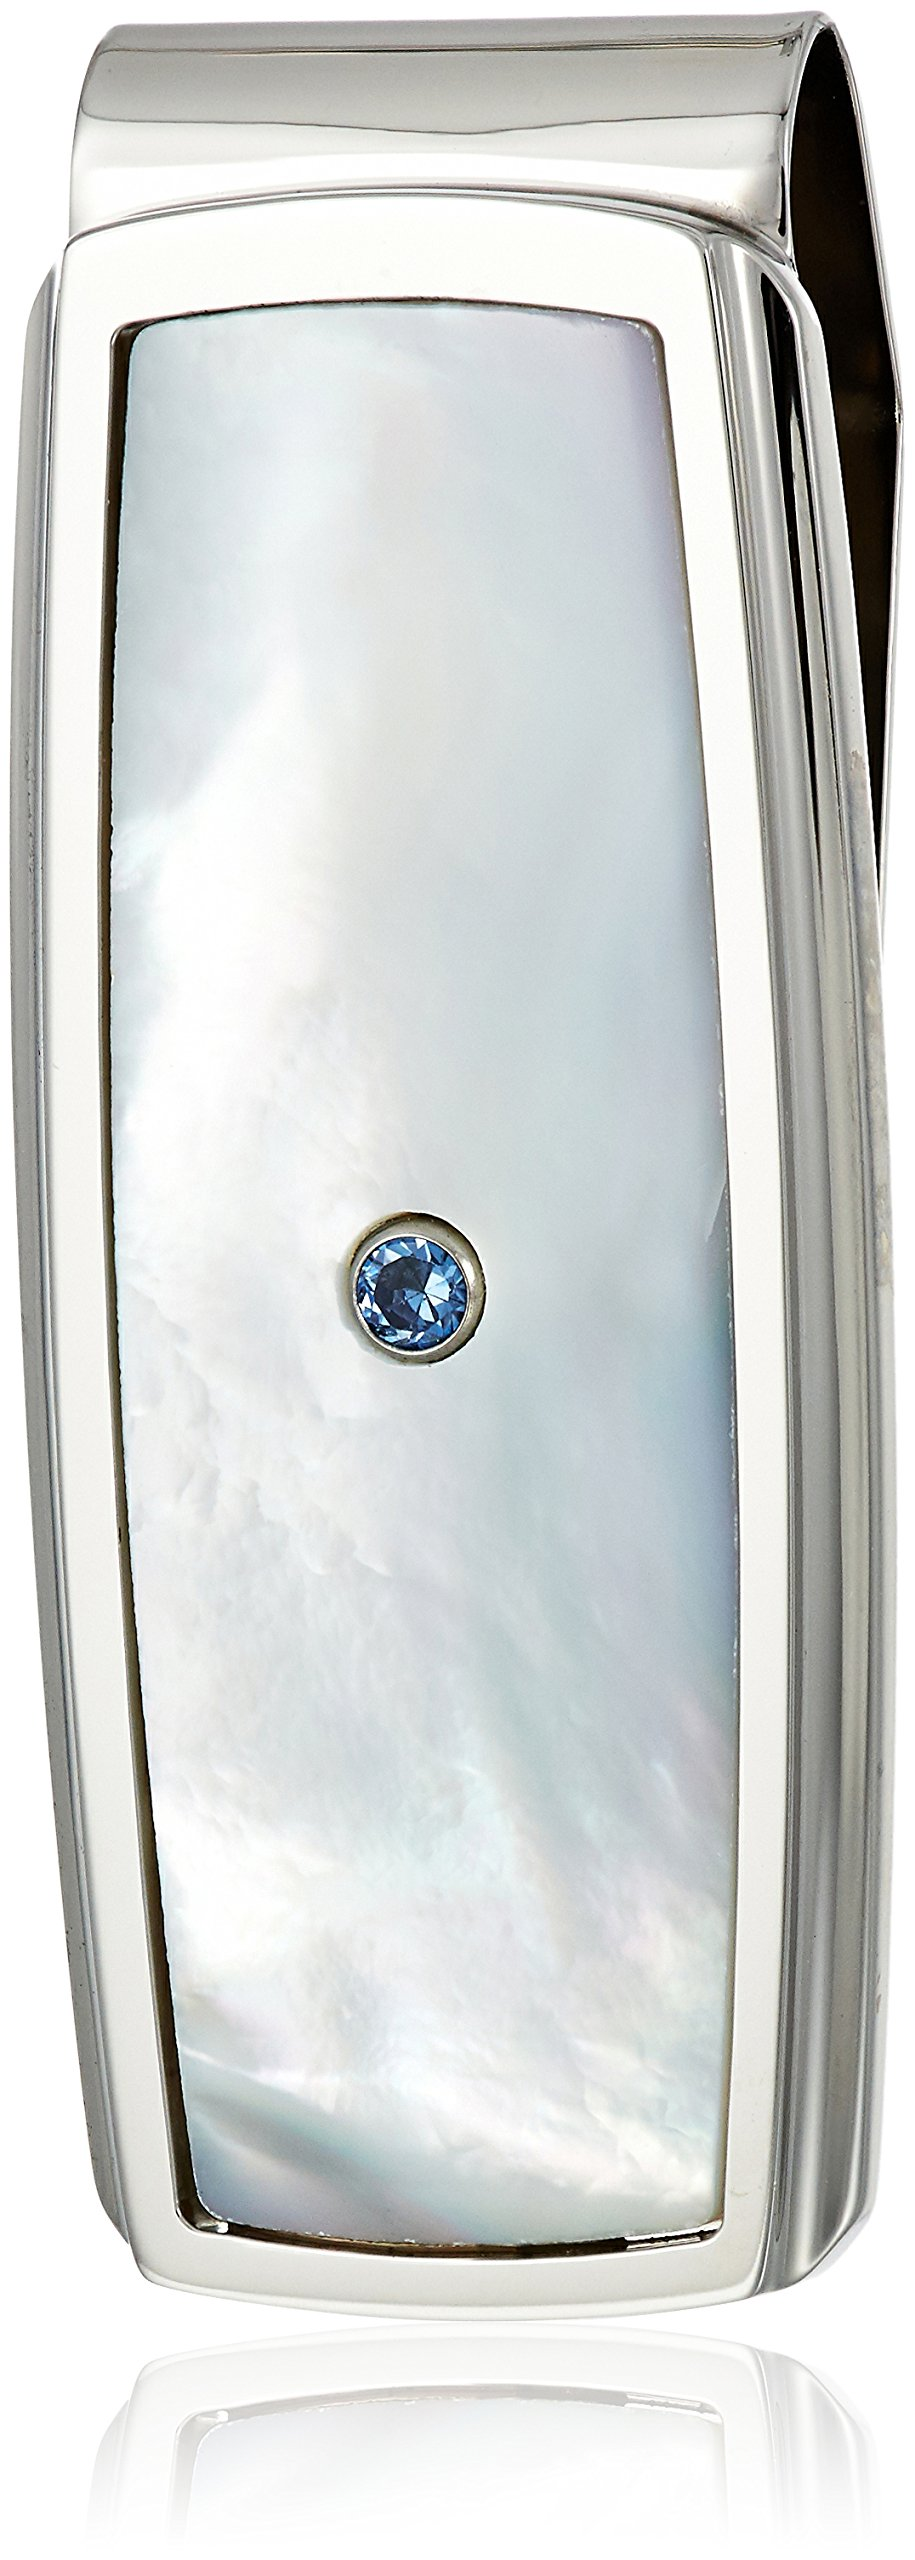 Men's Stainless Steel Mother of Pearl Inlay with Created Sapphire Accent Money Clip